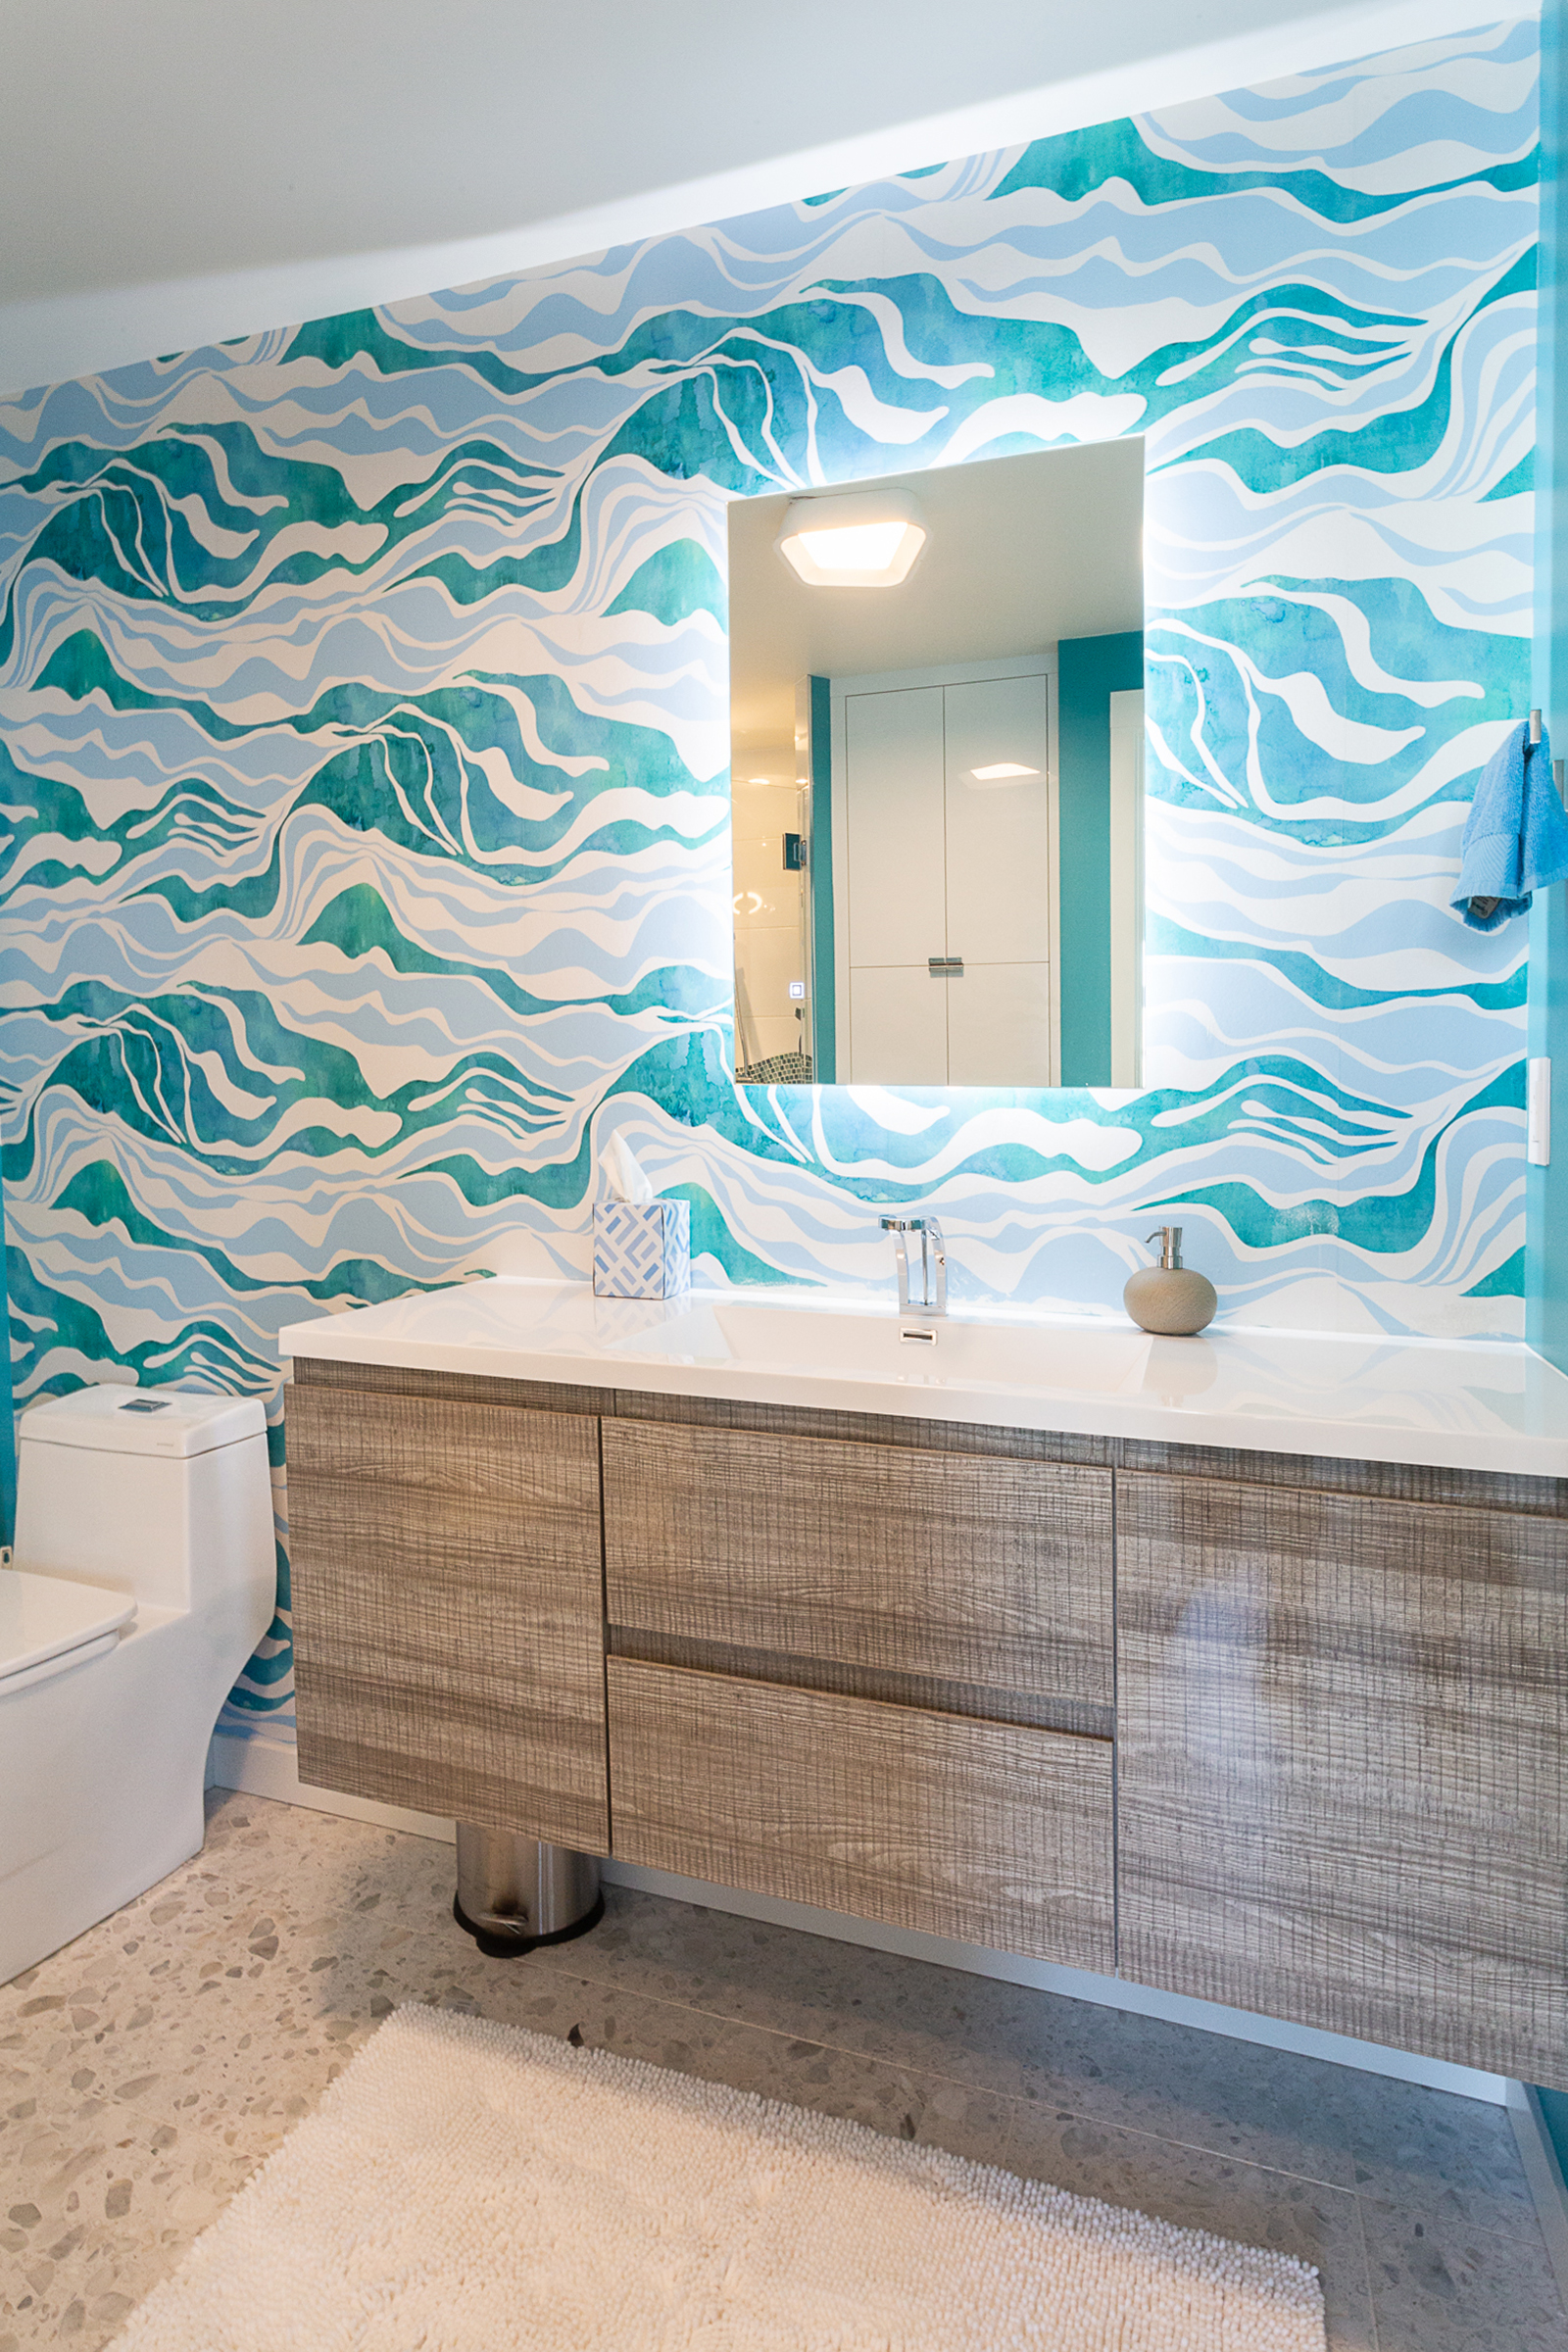 Vine Condominium Seattle - Bathroom 2